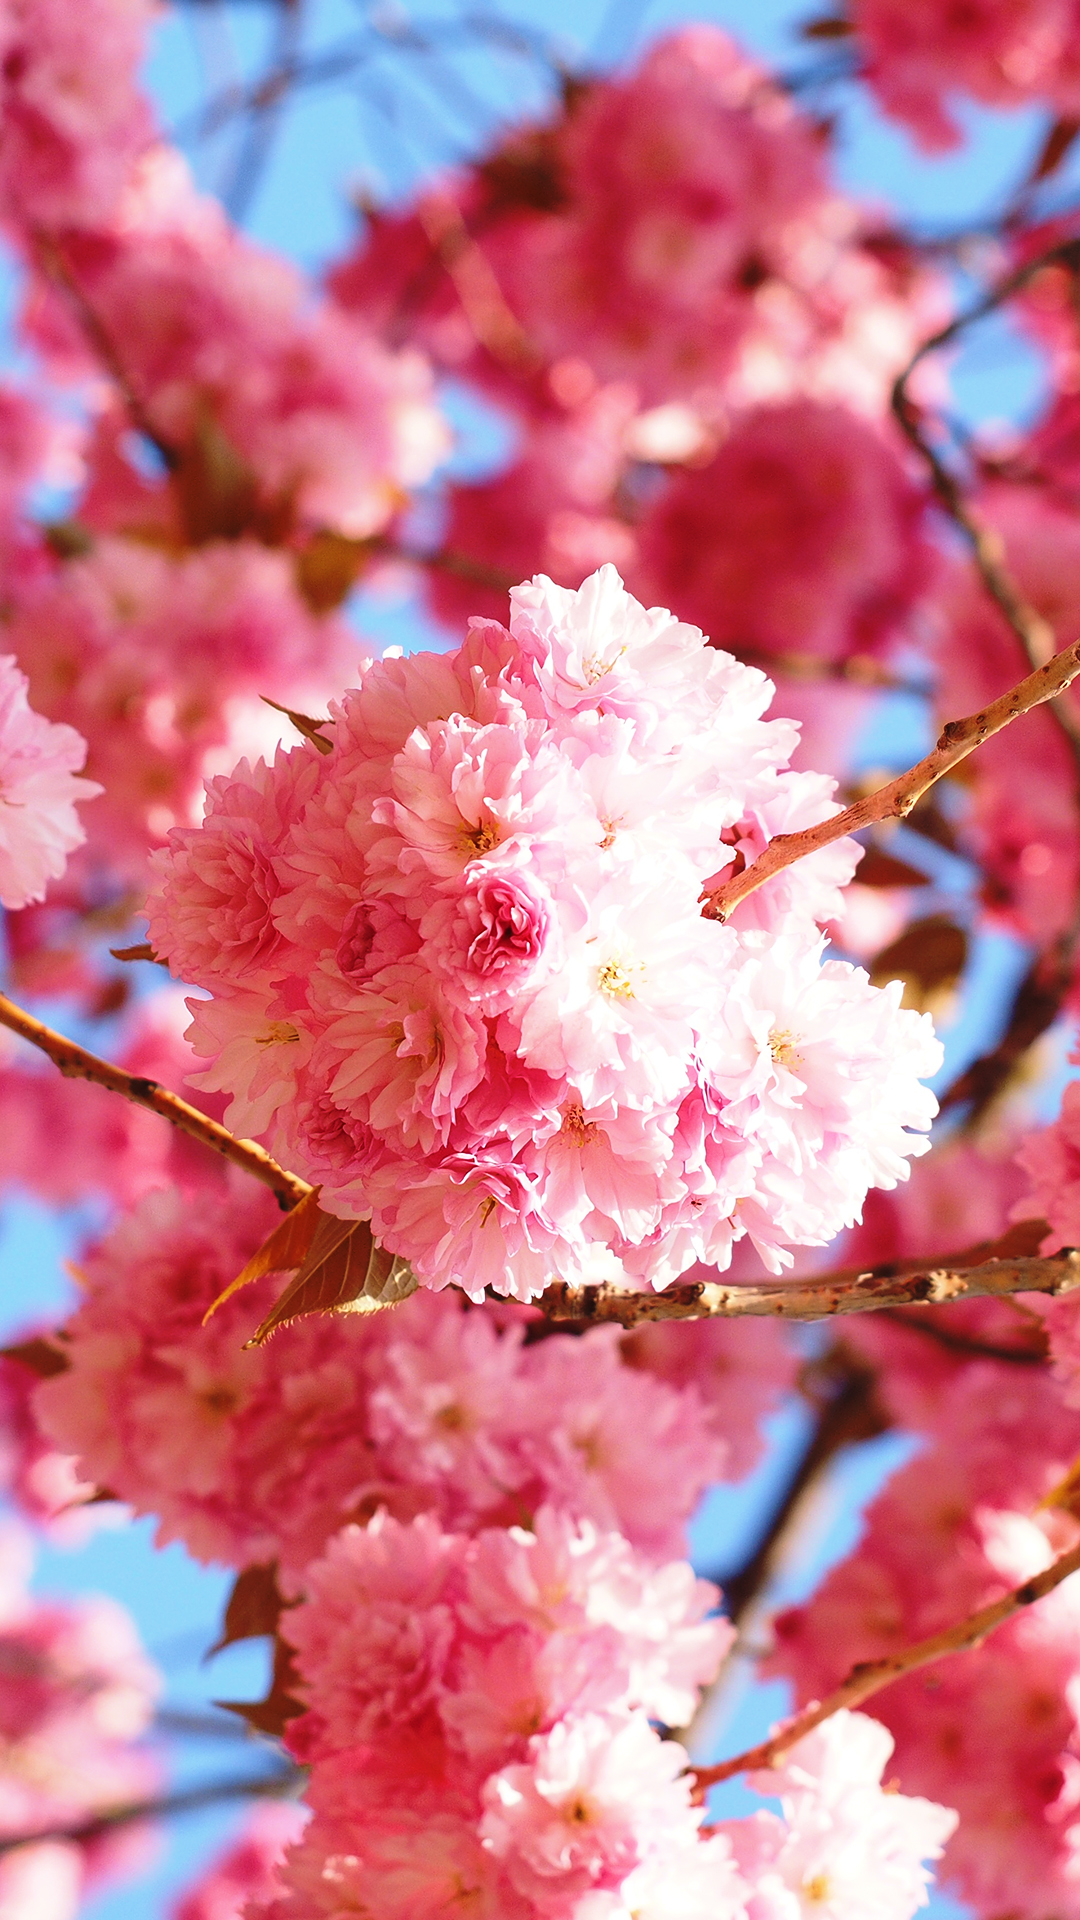 Wallpapers Cherry Blossom Cherry Blossoms Wallpapers Wallpaper Cave